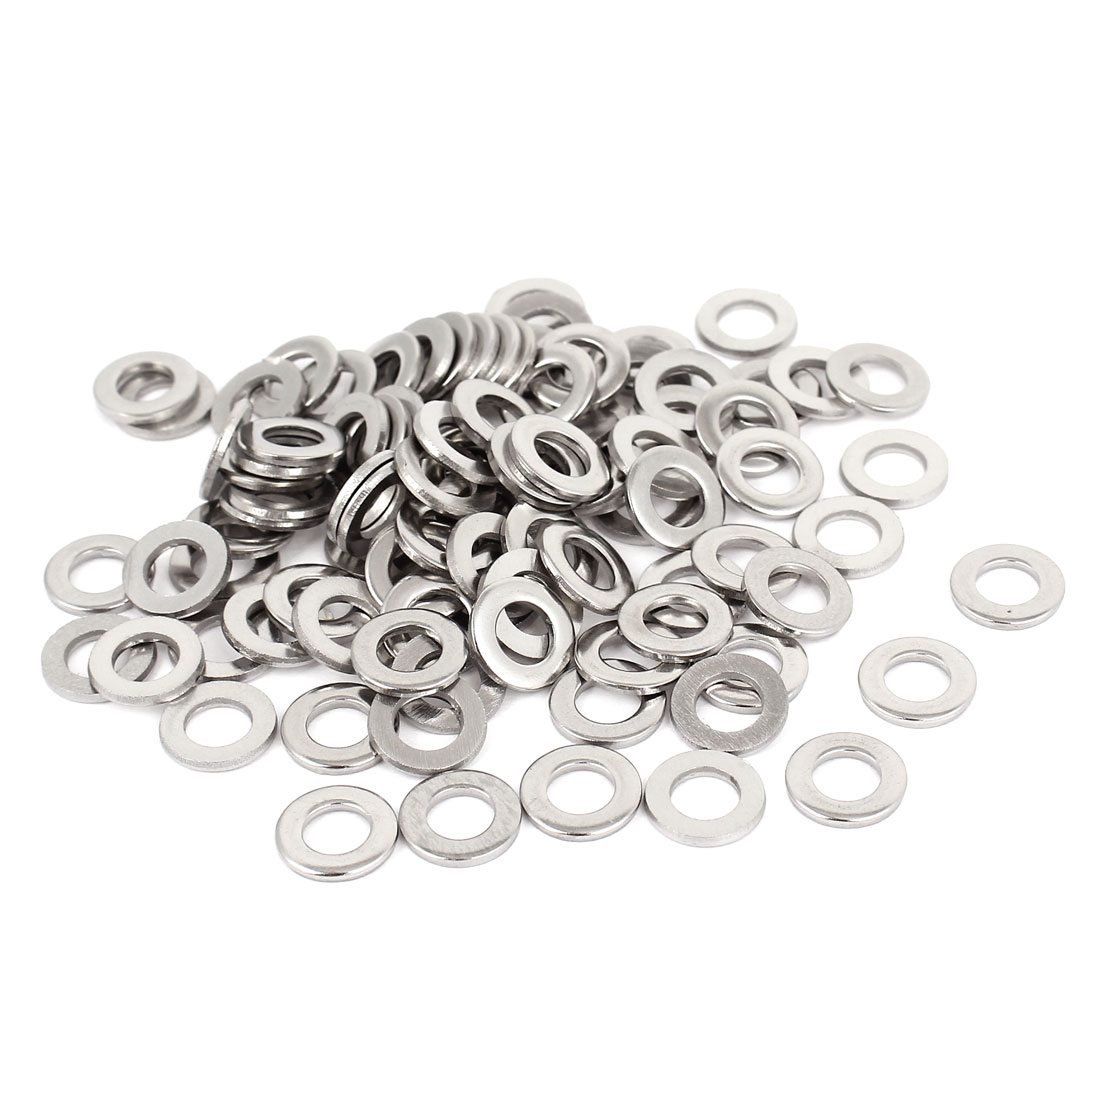 """100pcs Silver Tone 316 Stainless Steel Flat Washer 1/4"""" for Screws Bolts"""